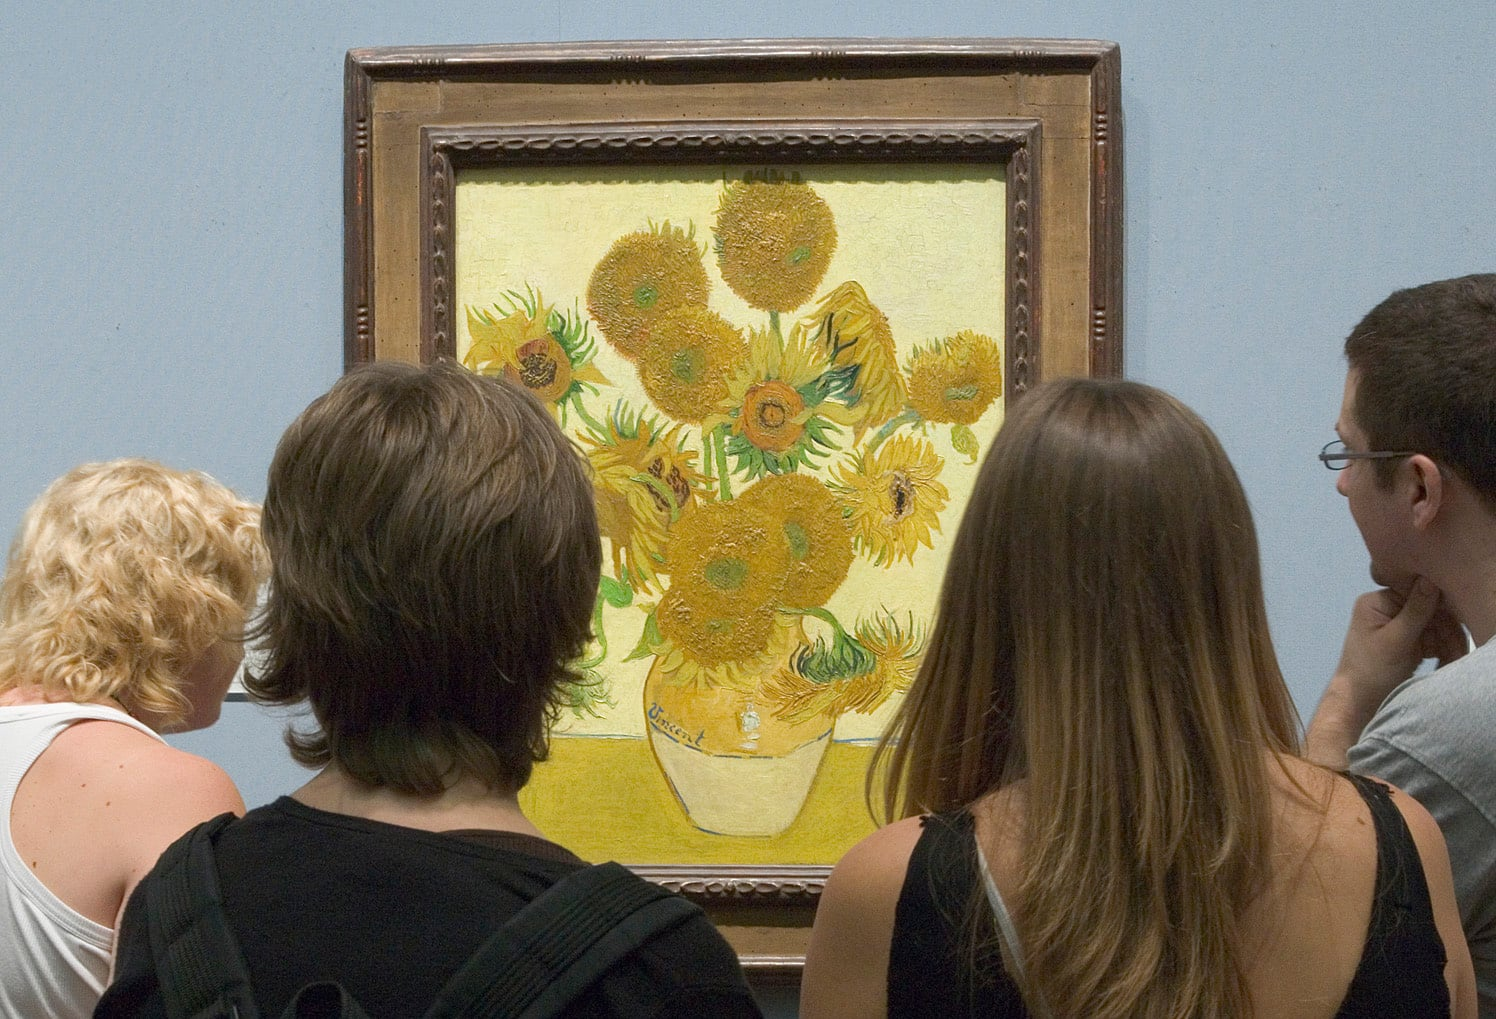 2. National Gallery, London - 50% off exhibitions with National Art Pass